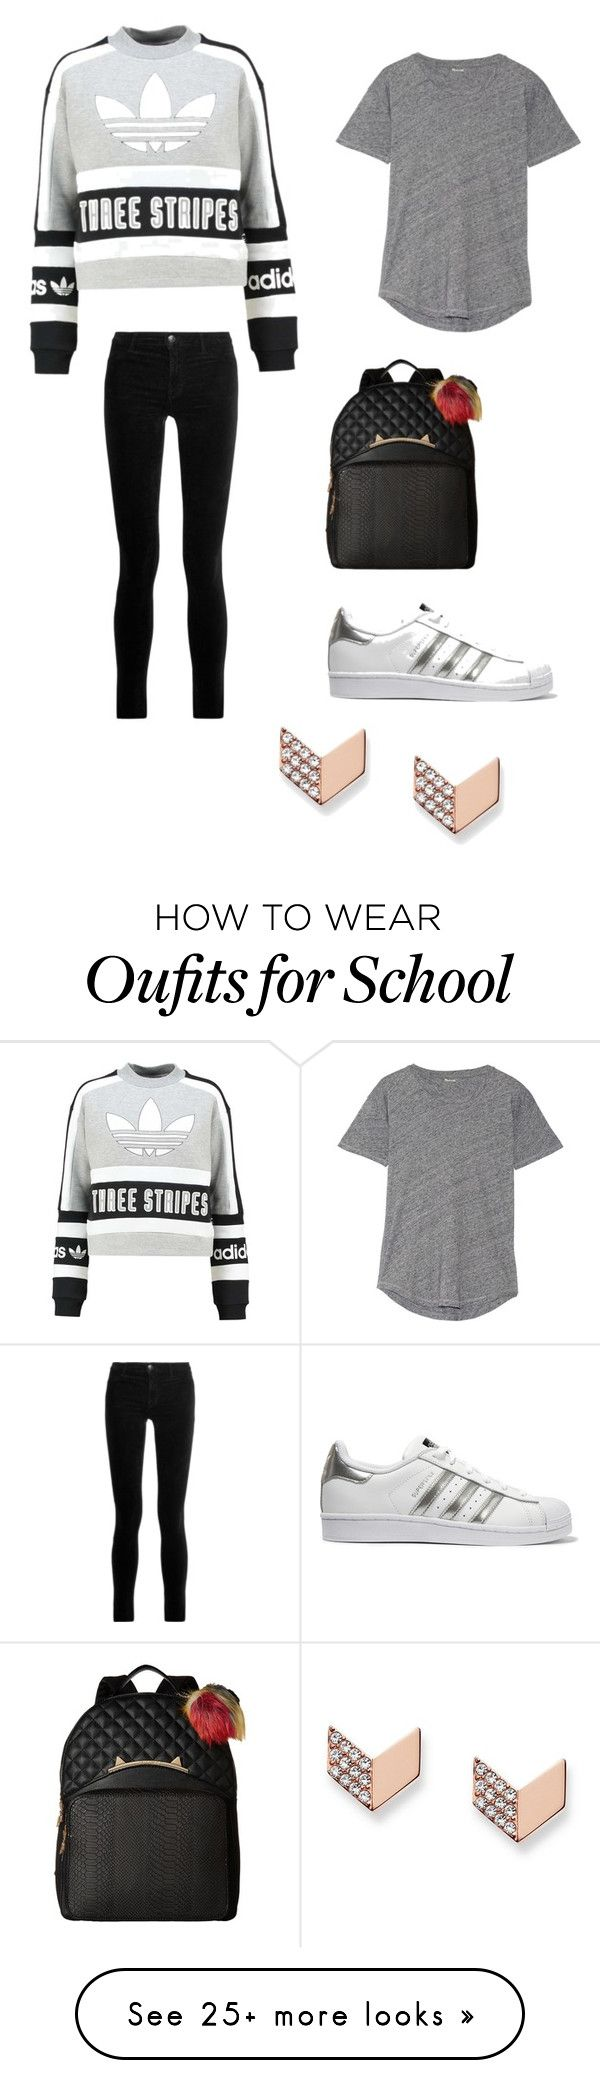 """""""Cute School Outfit """" by lsantana13 on Polyvore featuring adidas Originals, Madewell, J Brand, Betsey Johnson and FOSSIL"""